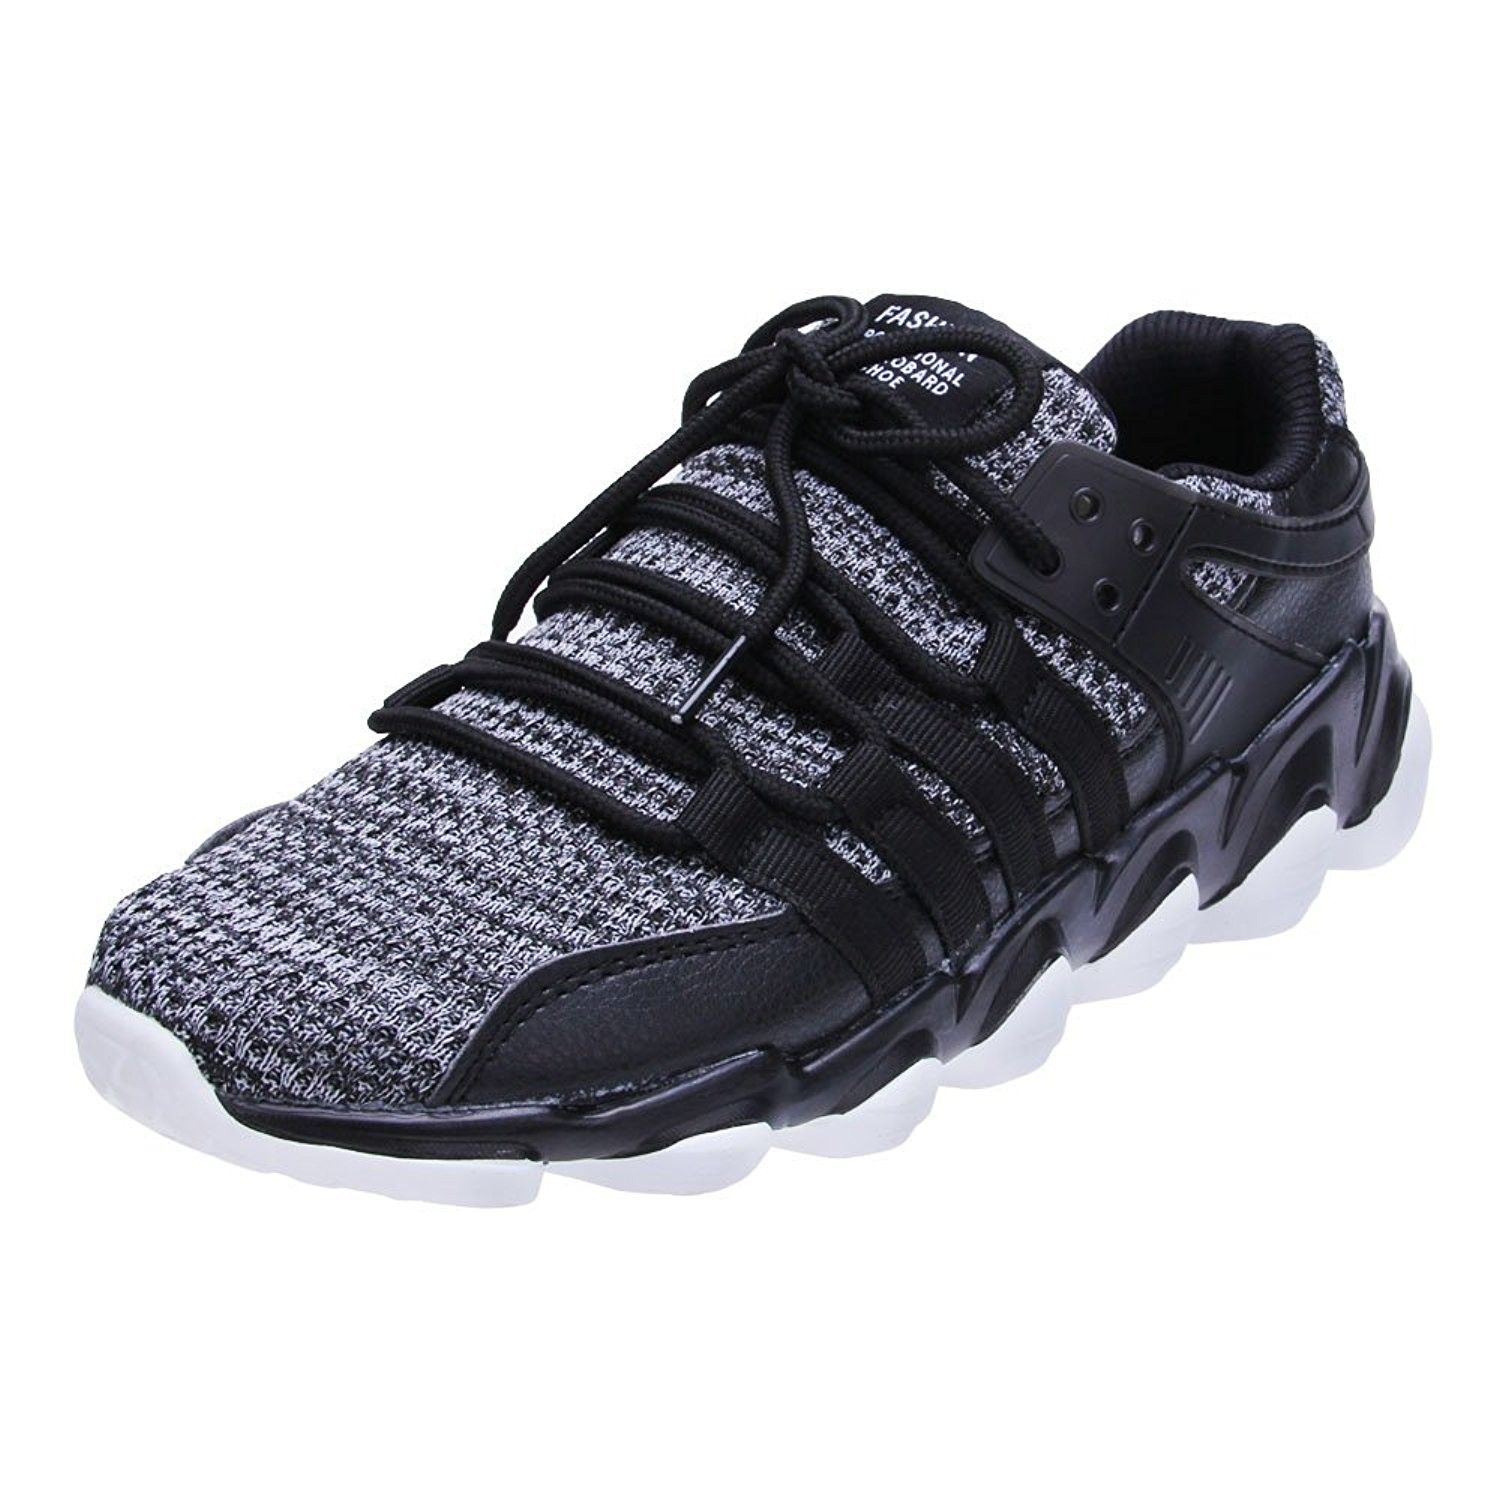 Mens Fashion Sneakers for Mens athletic Shock Absorption Best Running Shoes